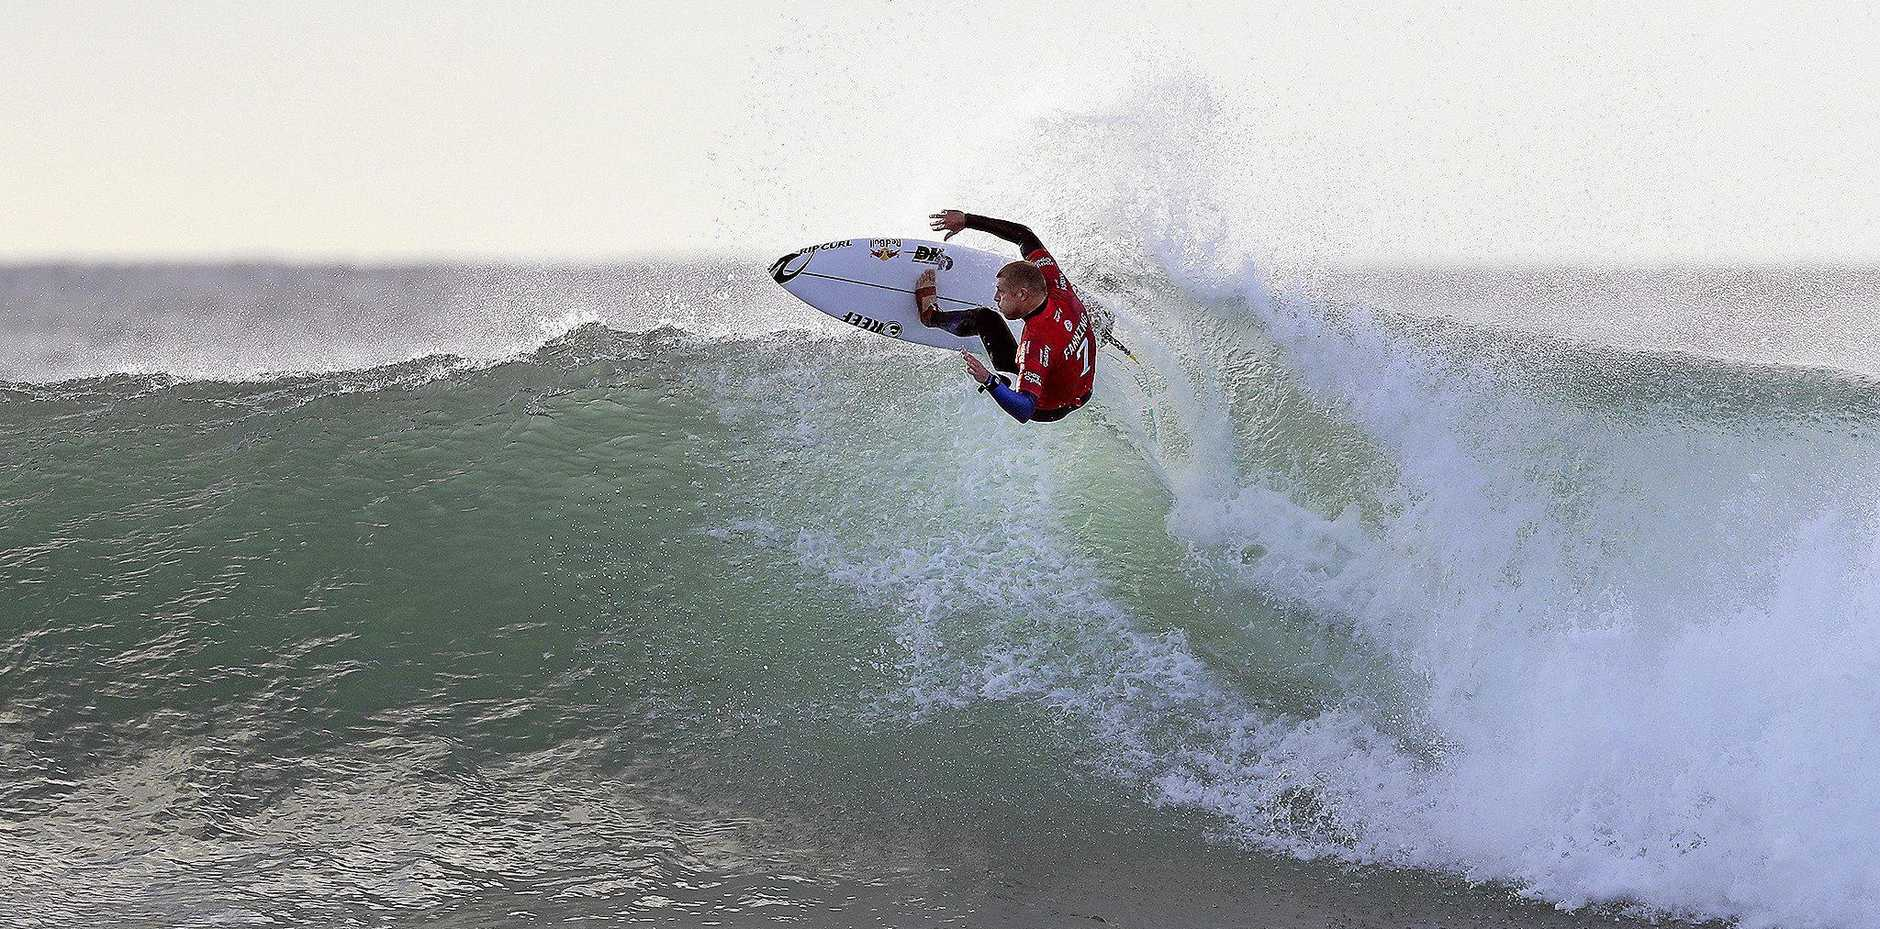 Mick Fanning rips into a wave at Jeffreys Bay in South Africa, the venue for the J-Bay Open.